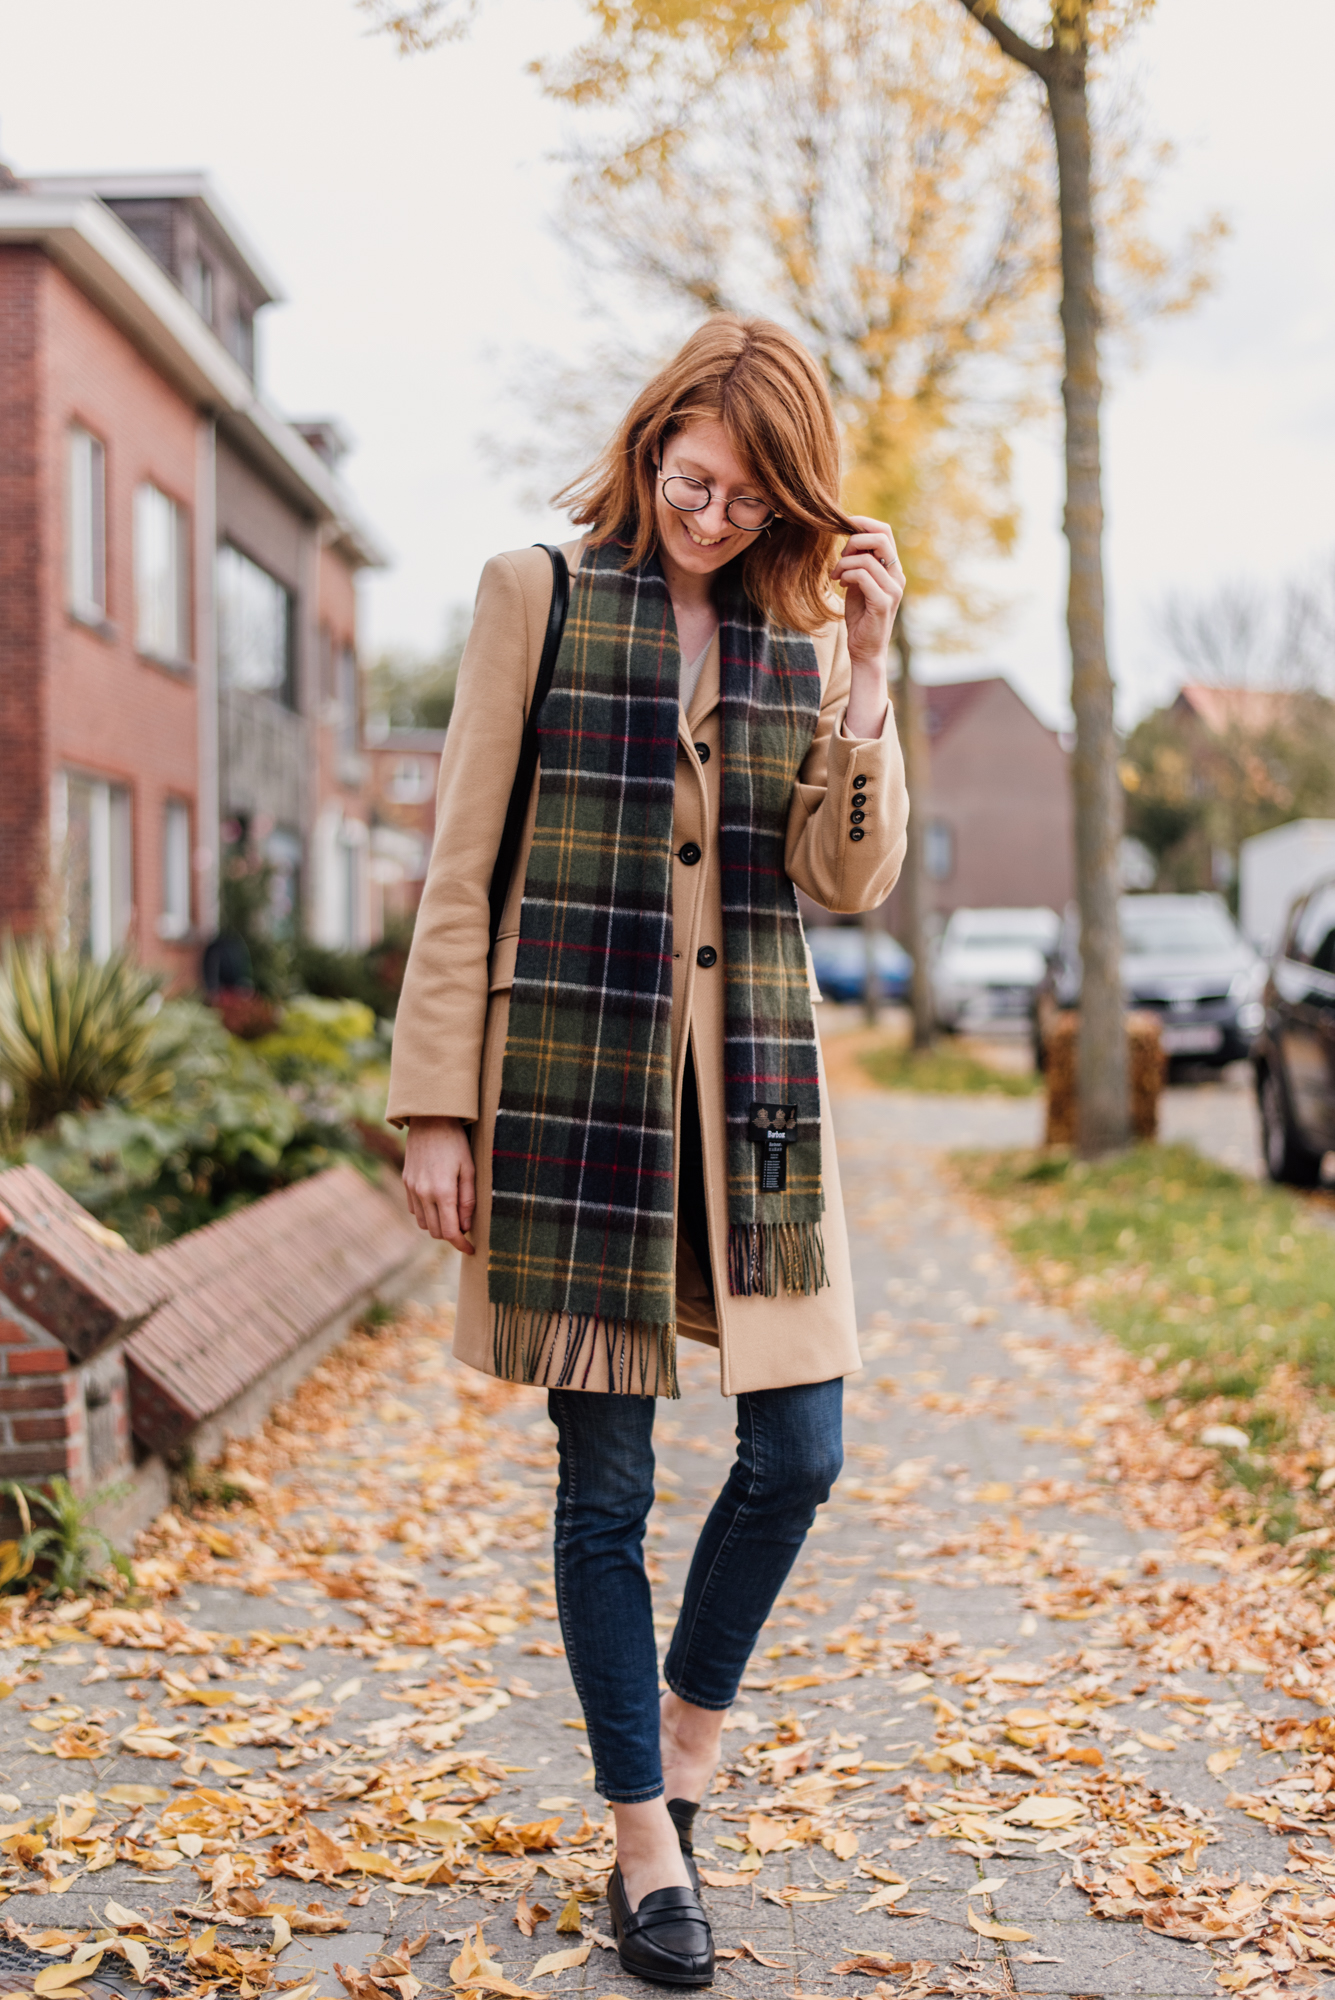 Woman wearing a camel colored coat from Zara and a plaid scarf from Barbour in an outfit for autumn